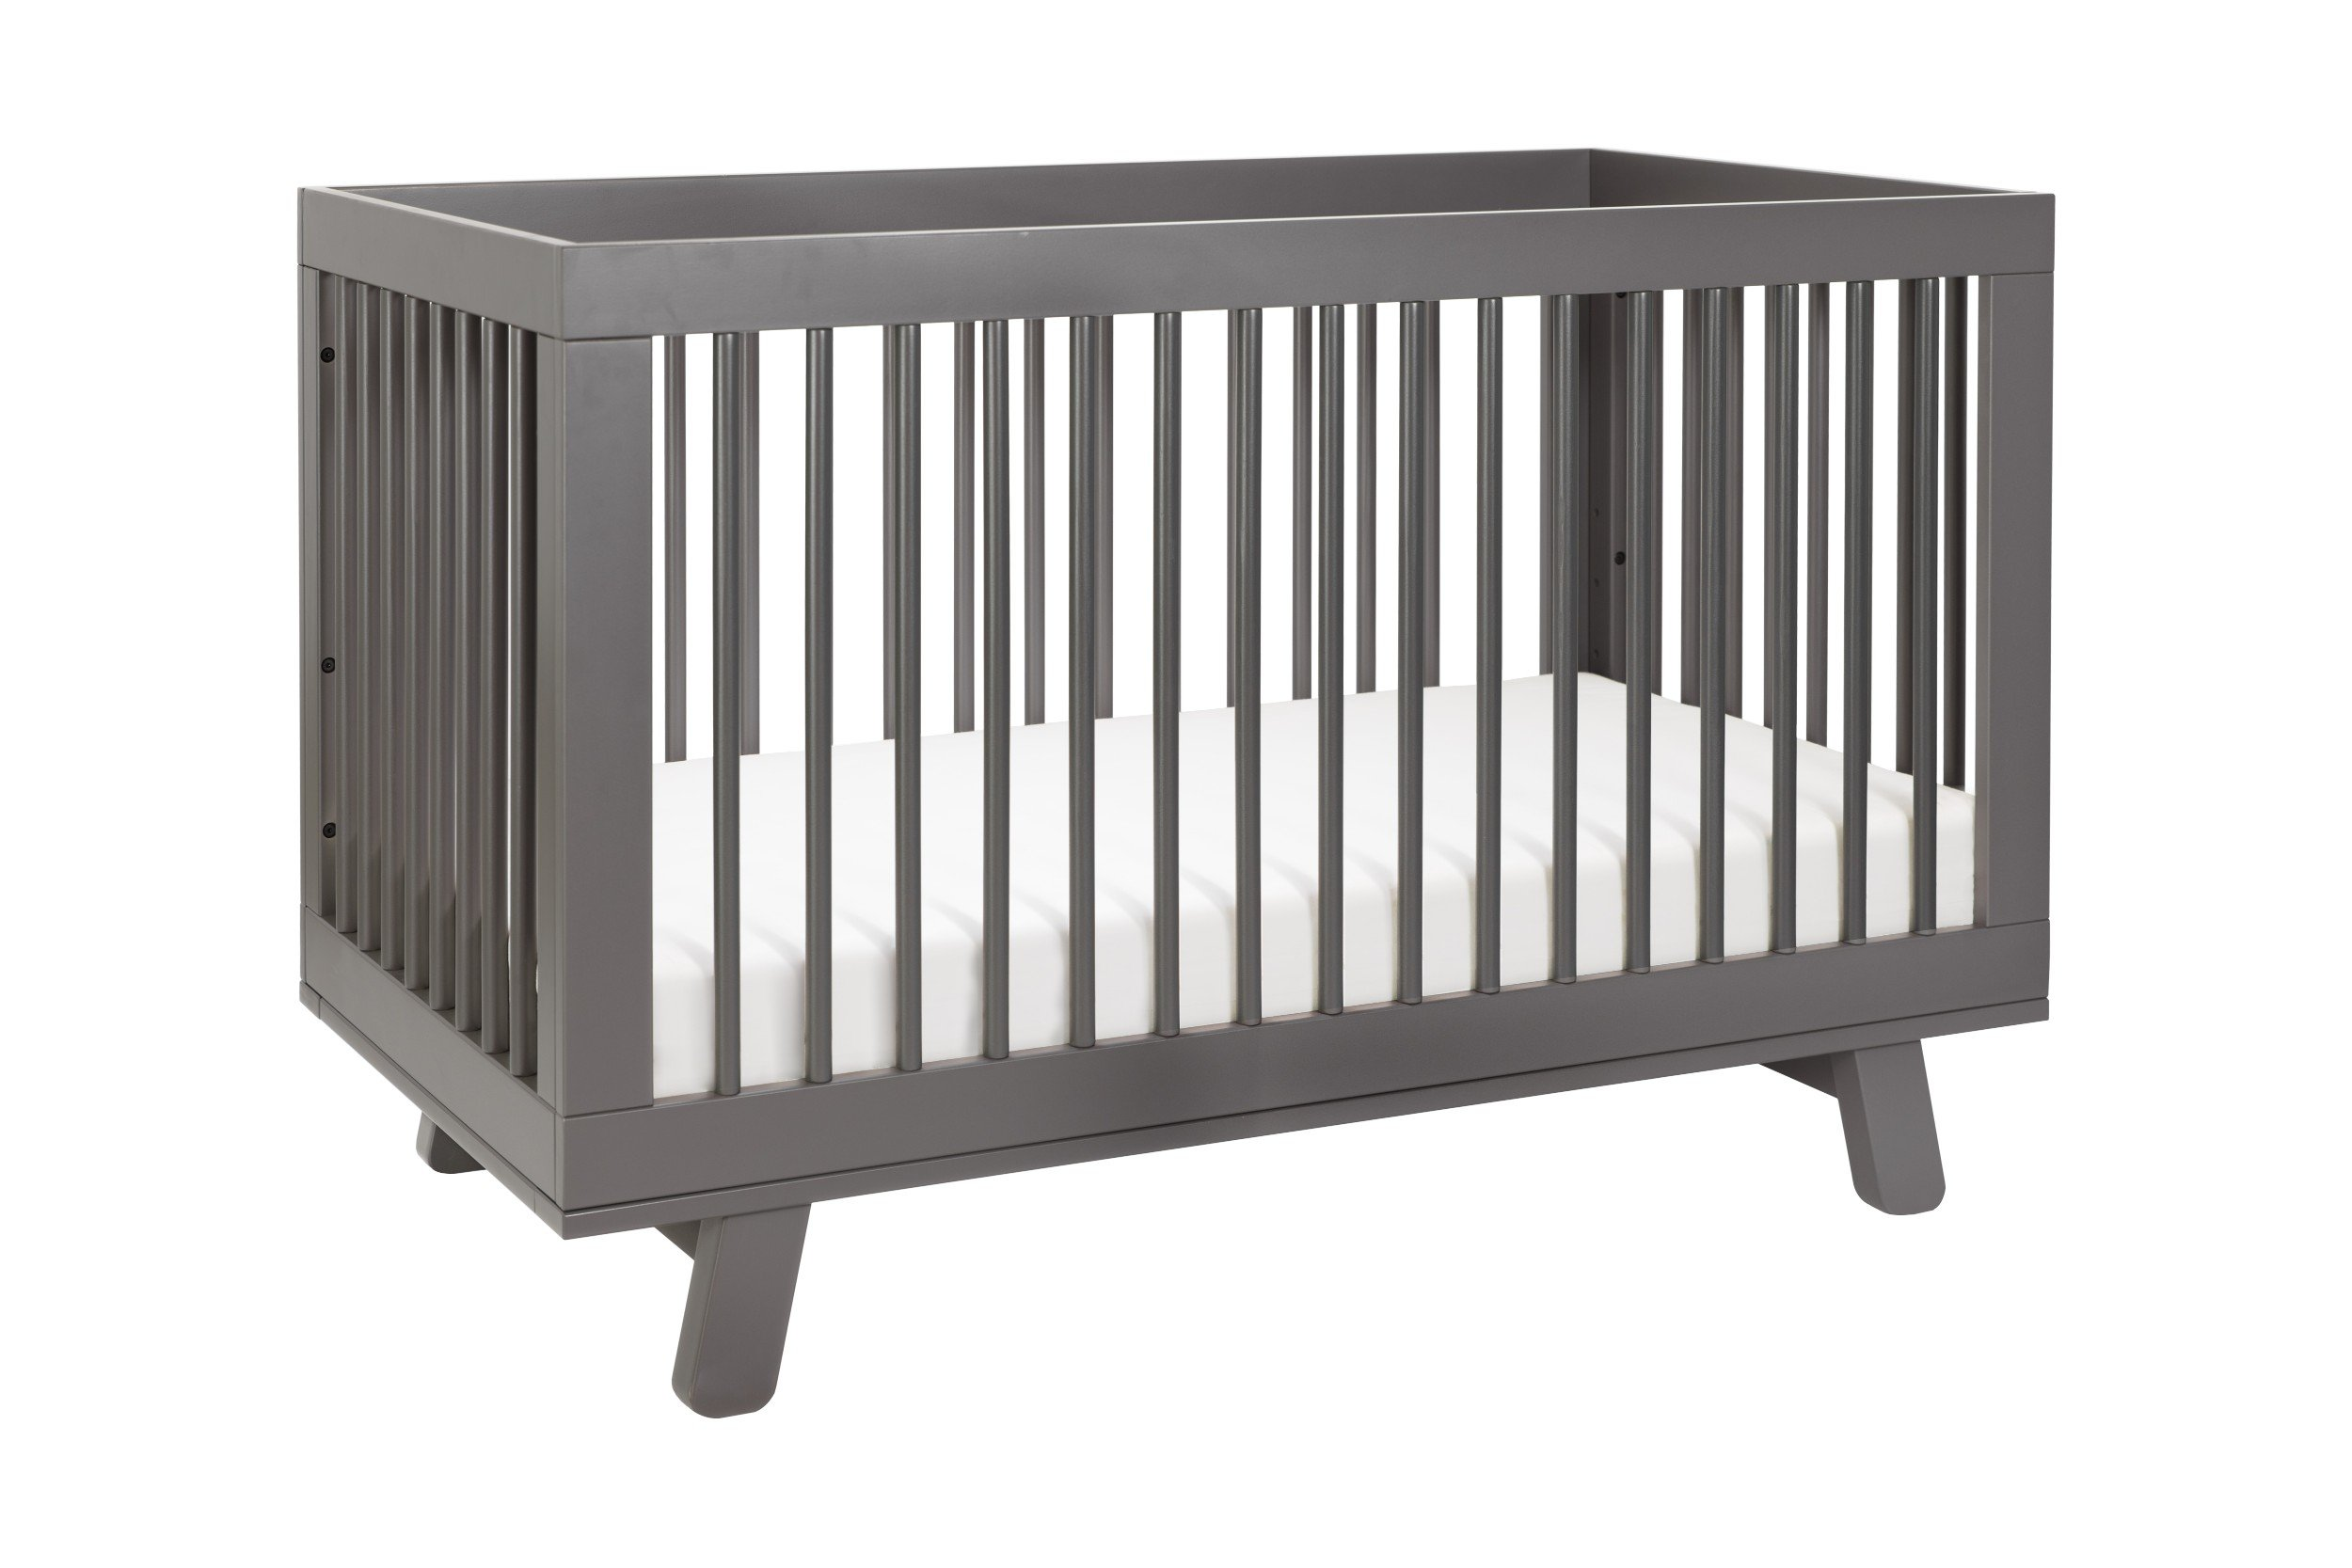 Hudson 3-in-1 Convertible Crib with Toddler Bed Conversion Kit